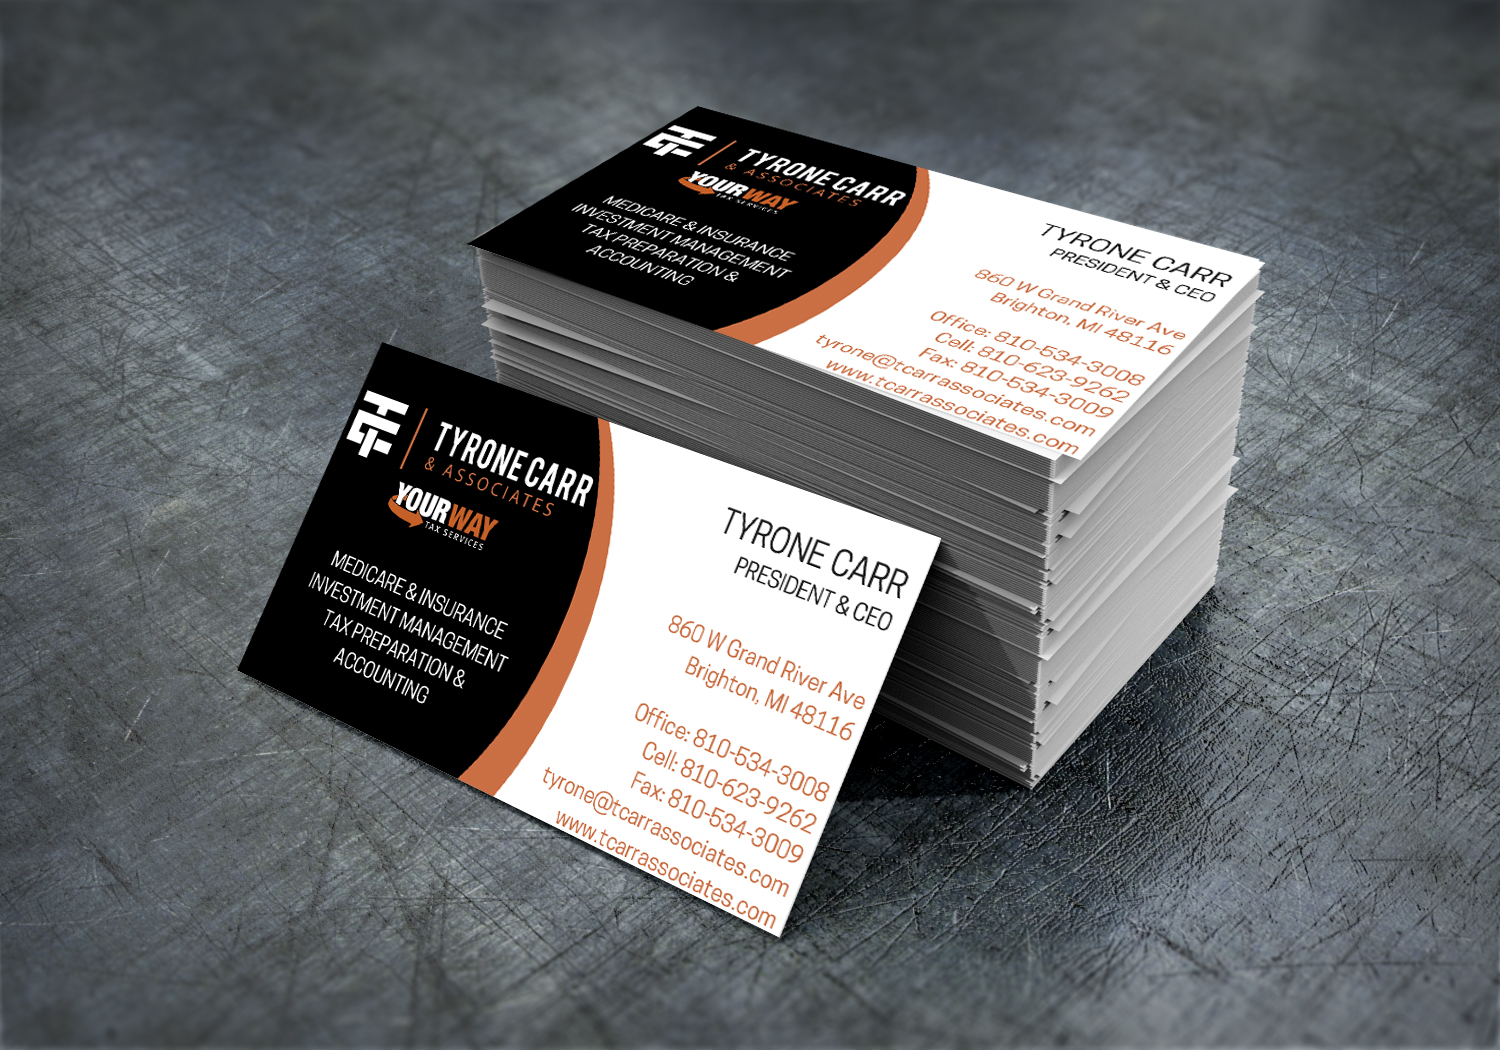 Business Cards - Tyrone Carr & Associates